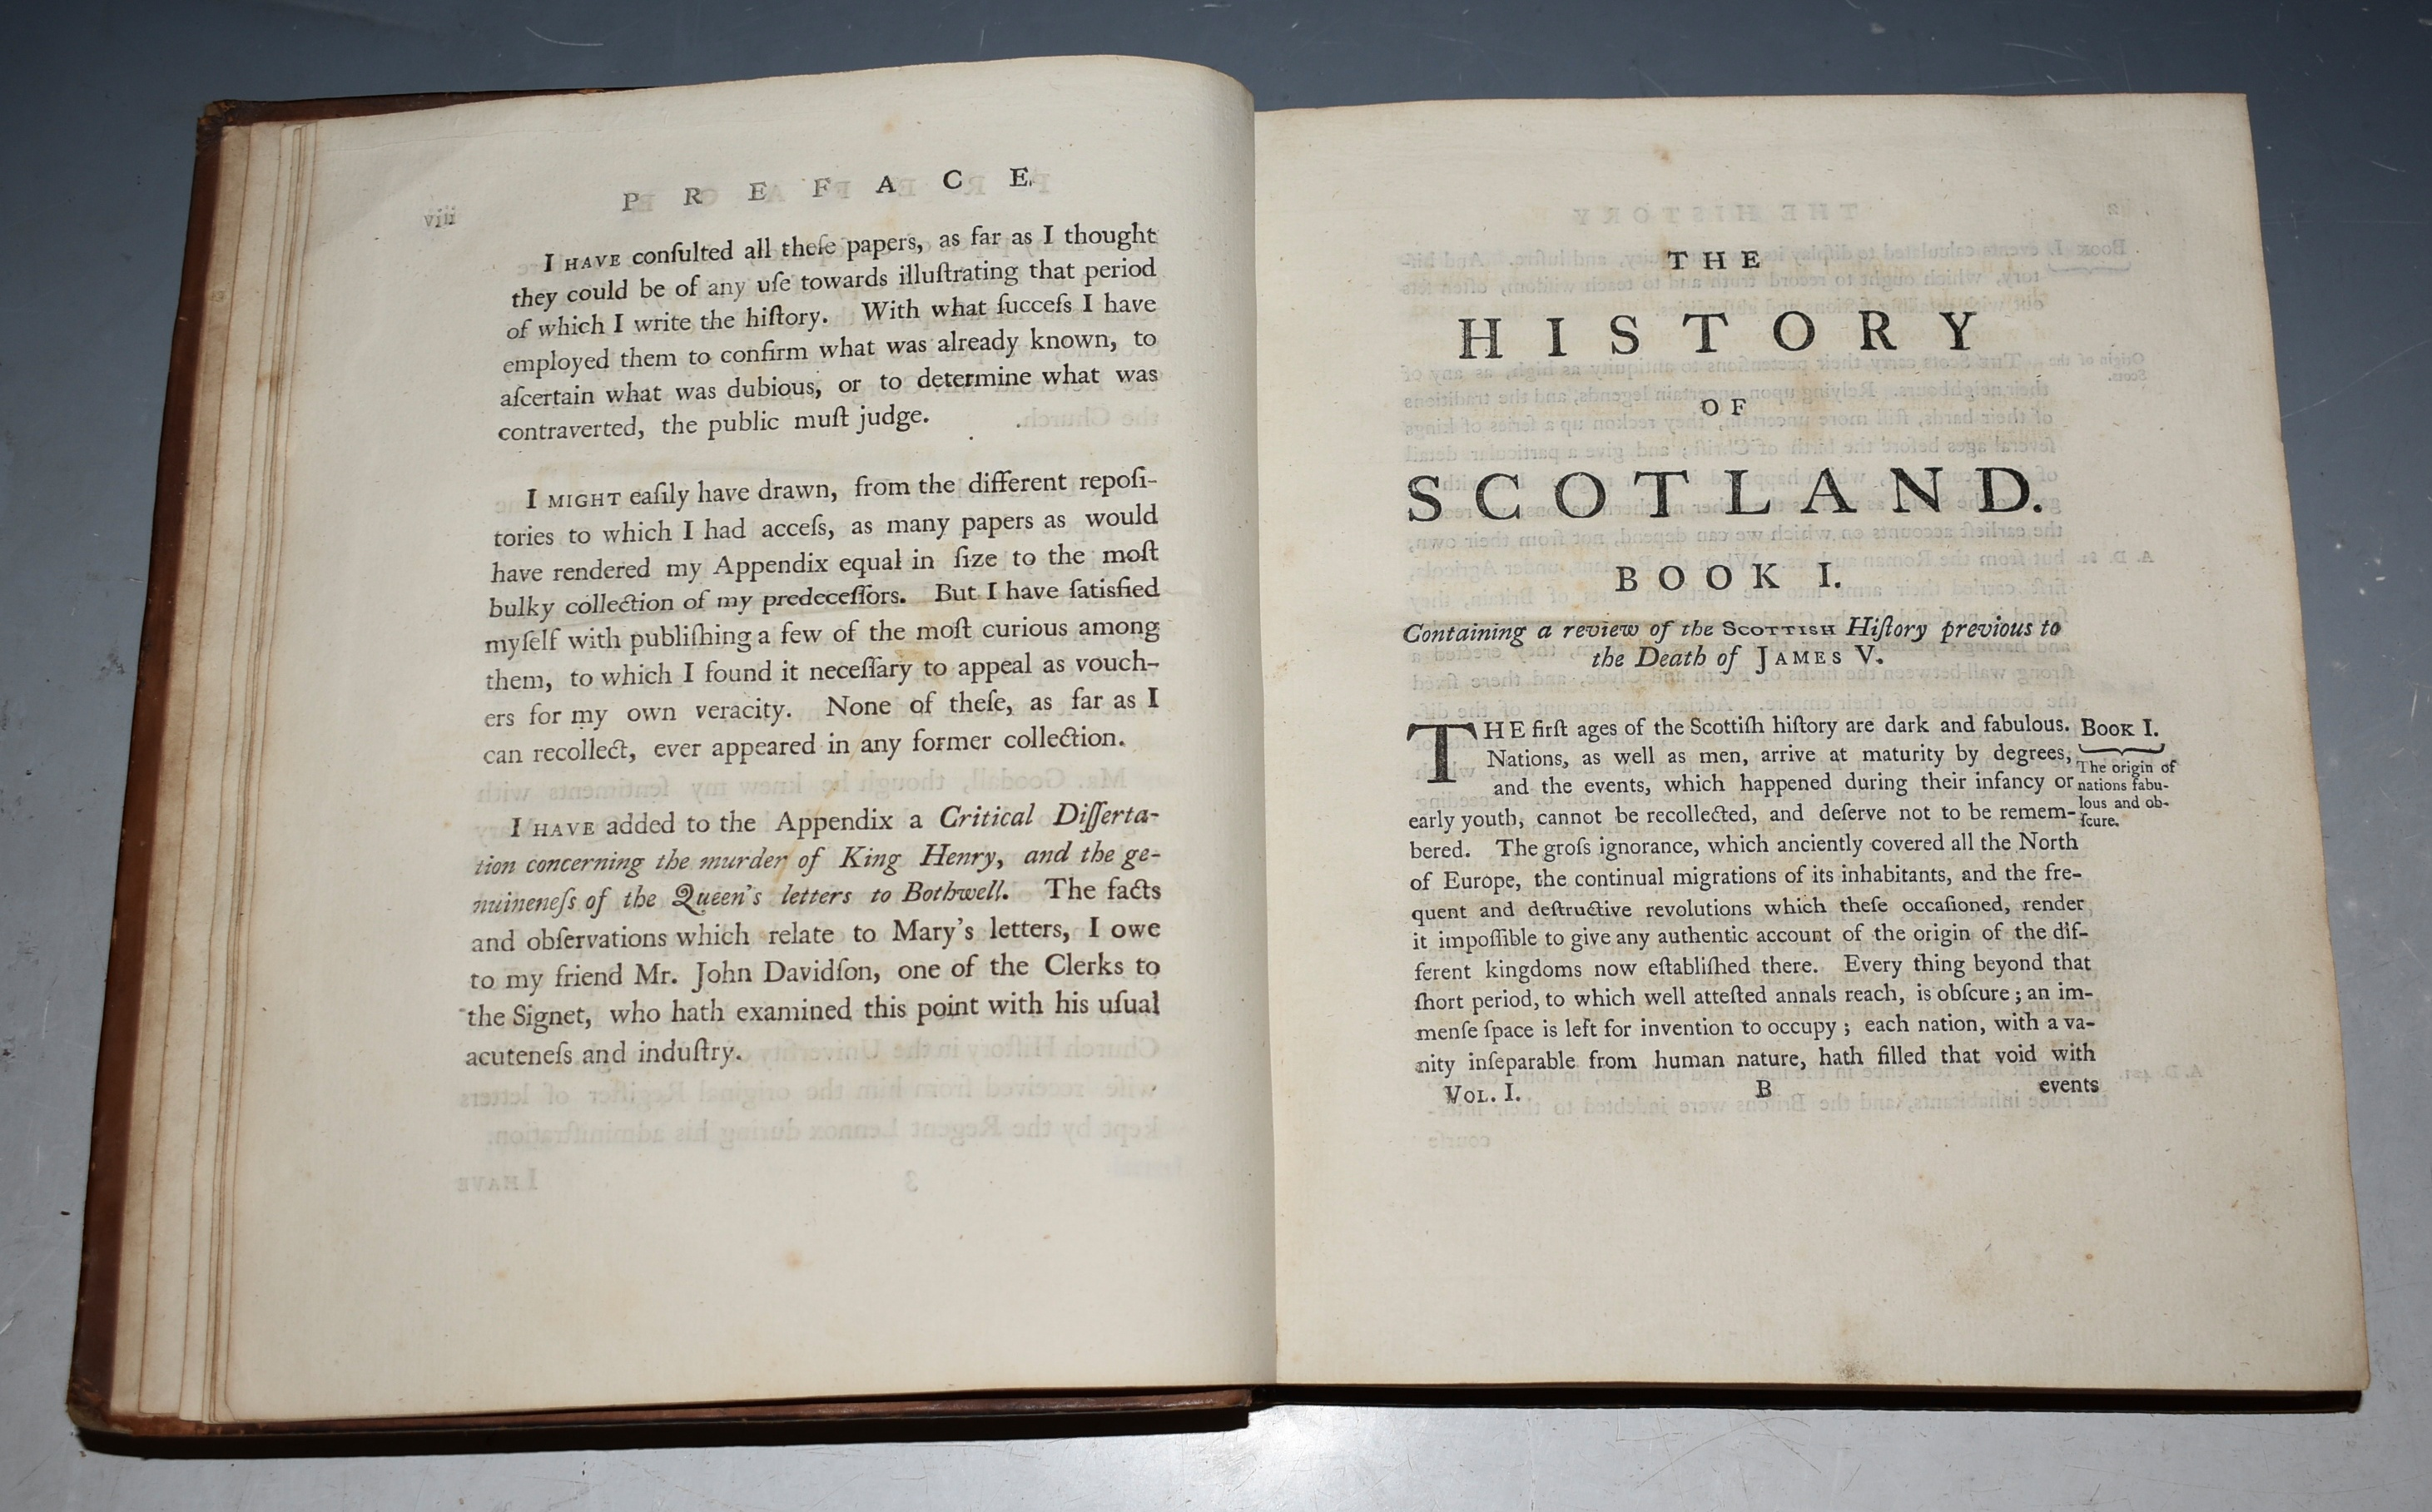 Image for The History of Scotland. During the Reigns of Queen Mary and of King James VI. Till His Accession to the Crown of England. With a Review of the Scottish History previous to that Period. And an Appendix containing original Papers. In Two Volumes. The Third Edition.